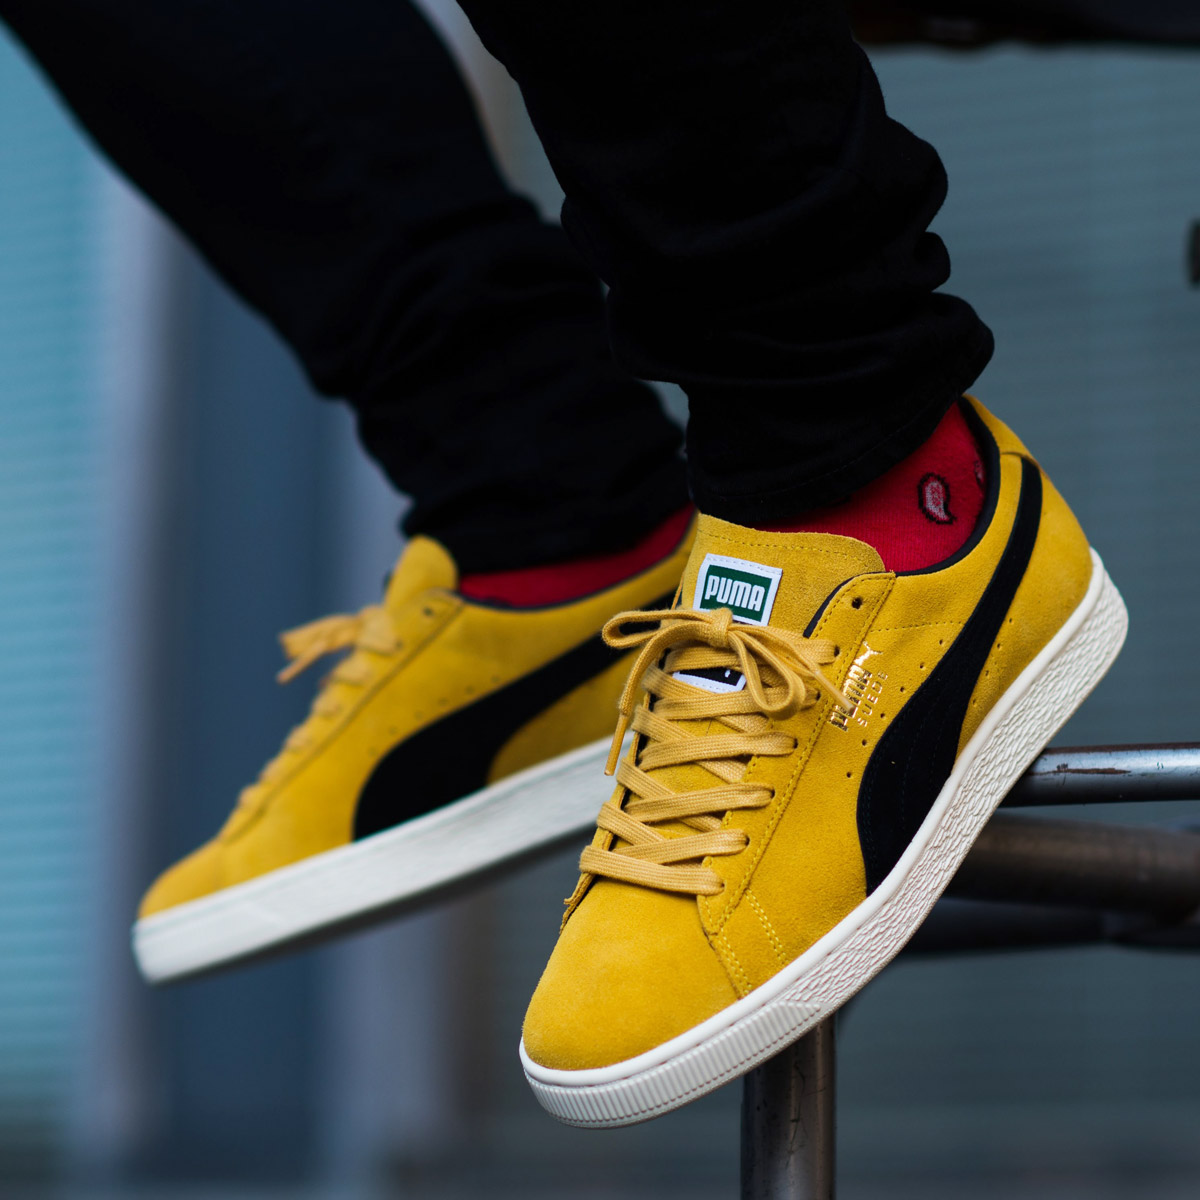 PUMA SUEDE CLASSIC ARCHIVE(プーマ スエード クラシック アーカイブ)(MINERAL YELLO)